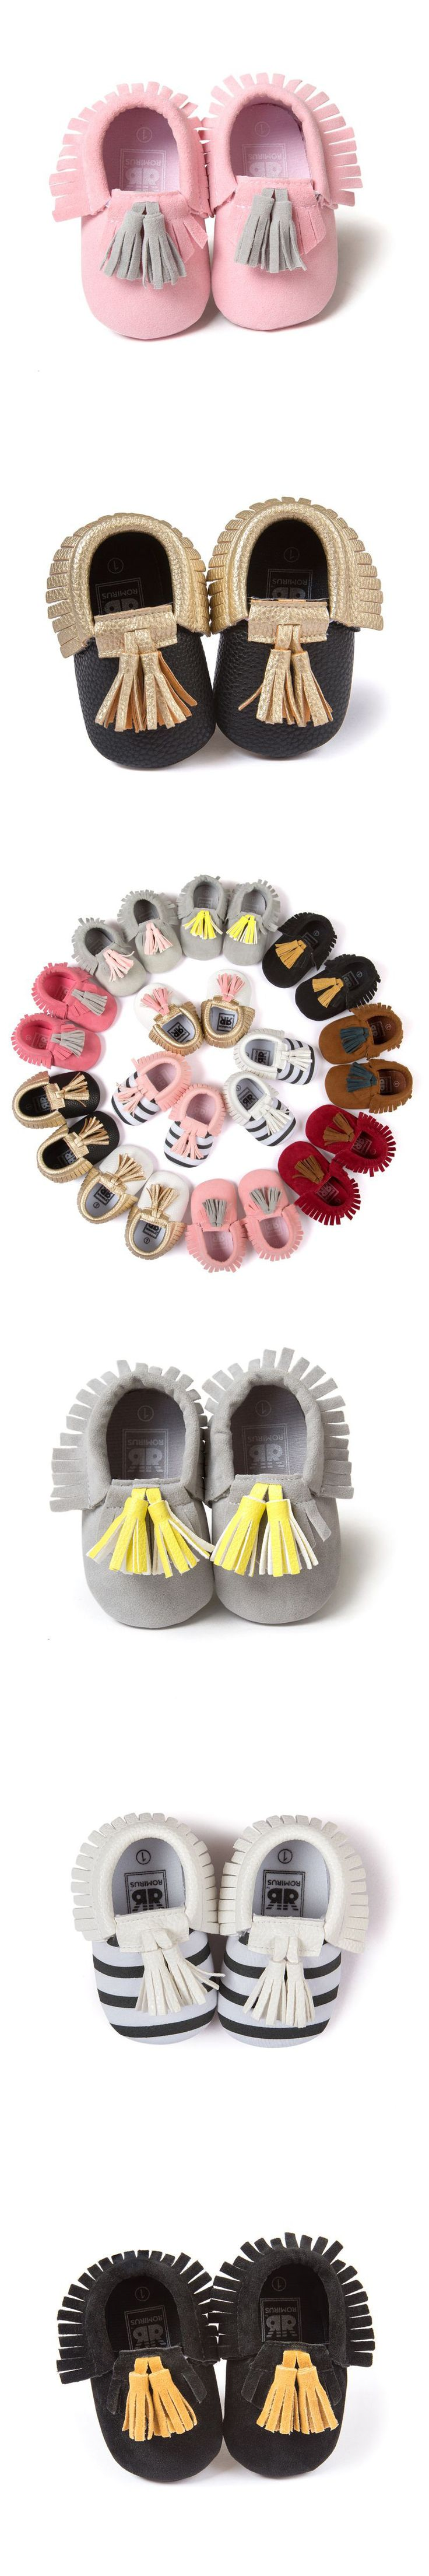 NEW Baby Toddler Infant Unisex Boys Girls Soft PU Leather Tassel Moccasins Girls Bow Moccs Booties Shoes Moccasin Bow shoes hot $3.34